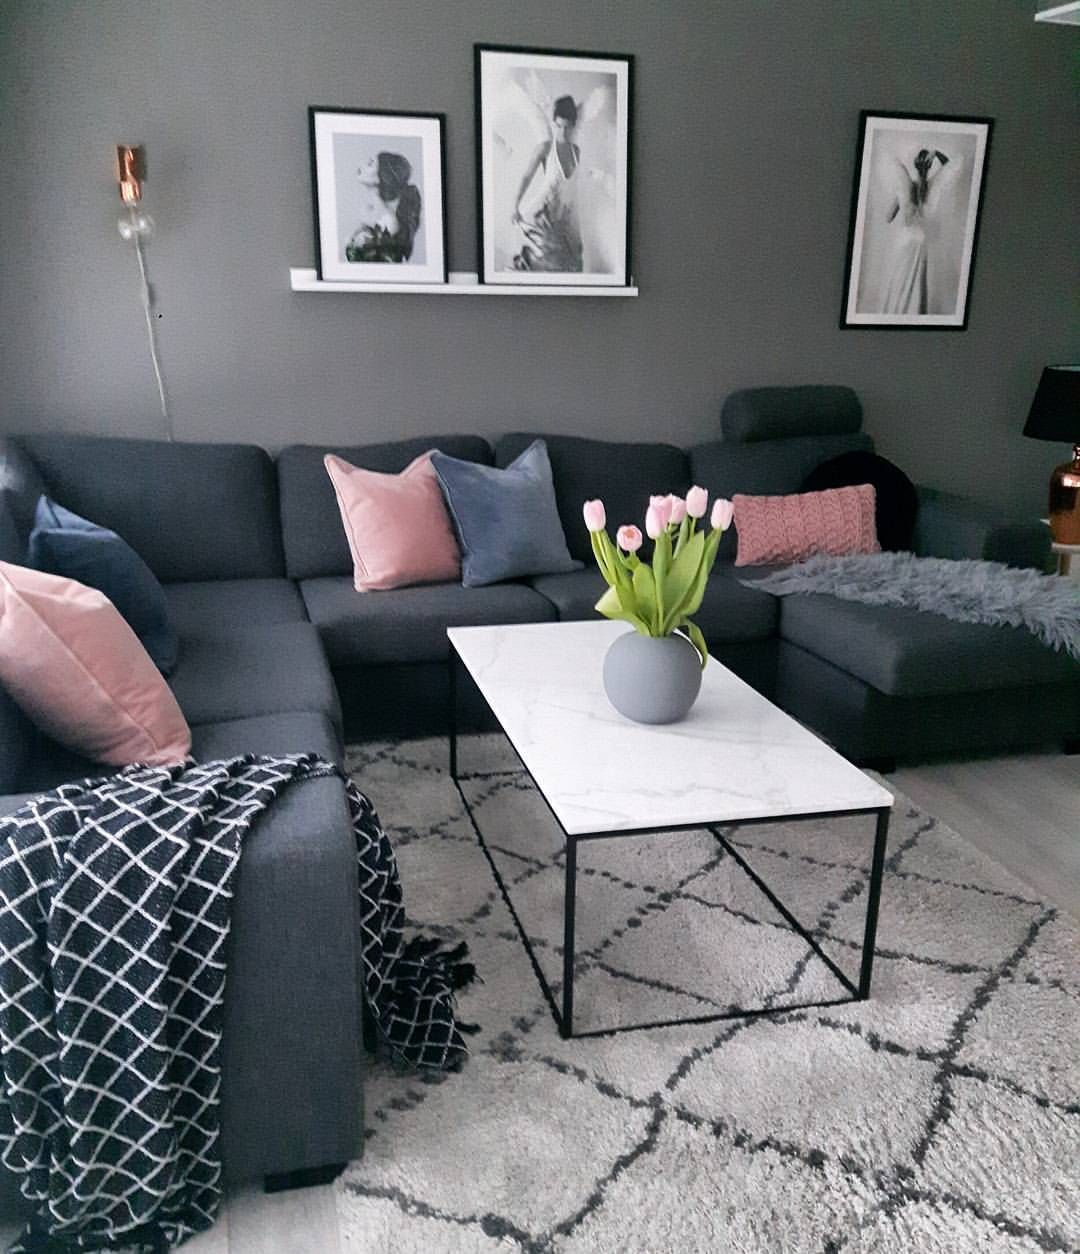 11 Cozy Living Room Color Schemes To Make Color Harmony In Your Living Room Decor Home Living Room Living Room Decor Colors Living Room Color Schemes Cozy living room colors